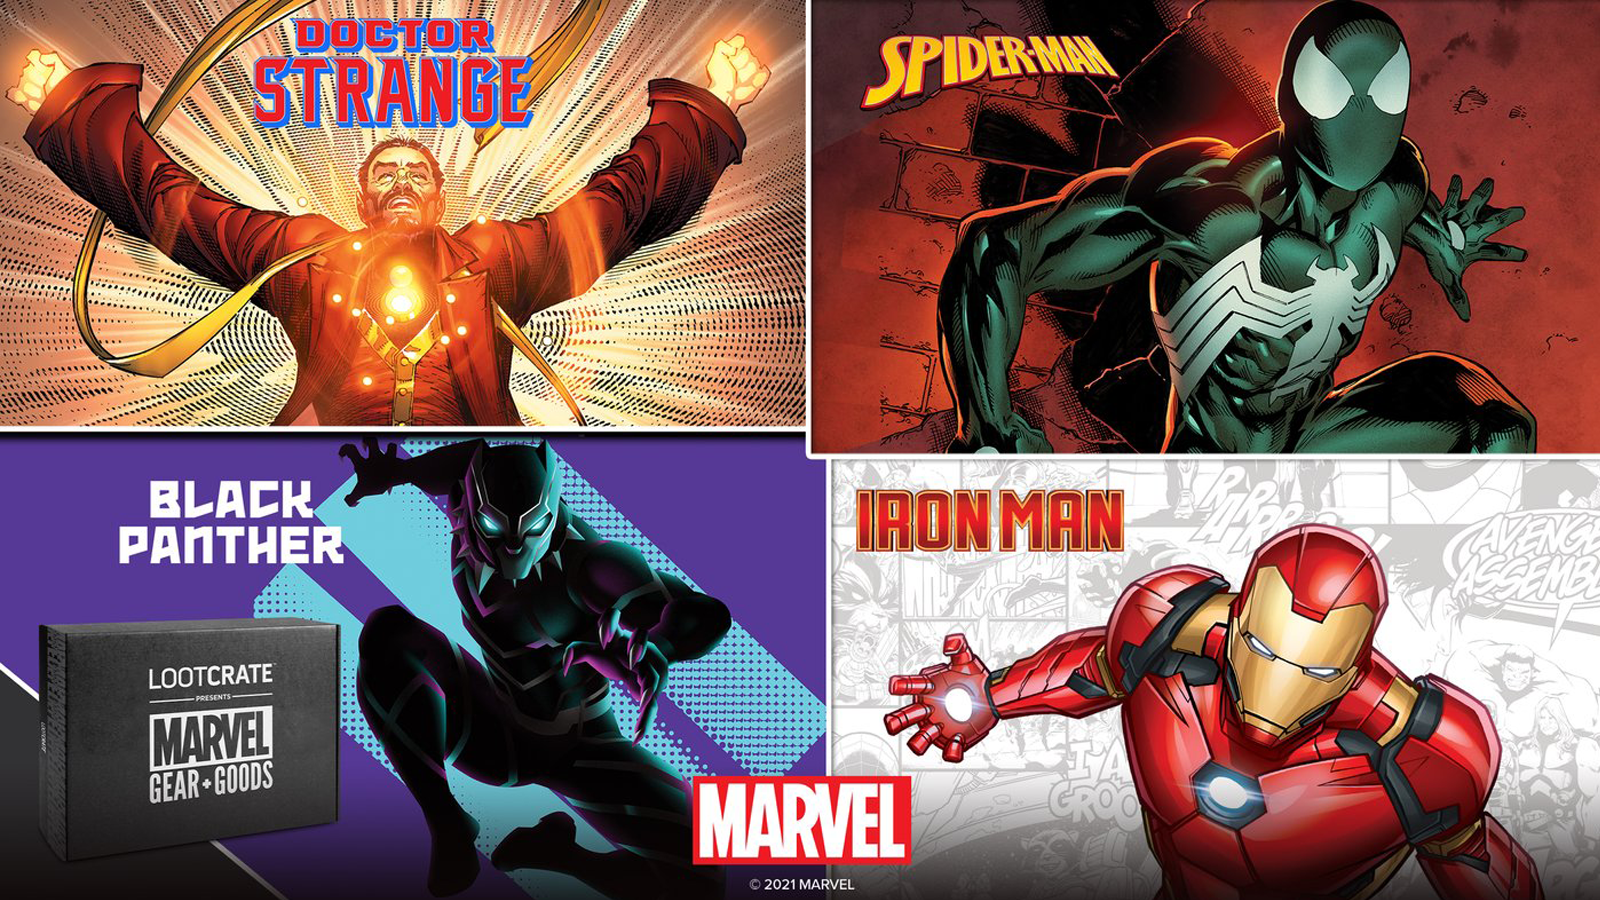 Four Marvel characters feature in the Marvel Gear + Goods box